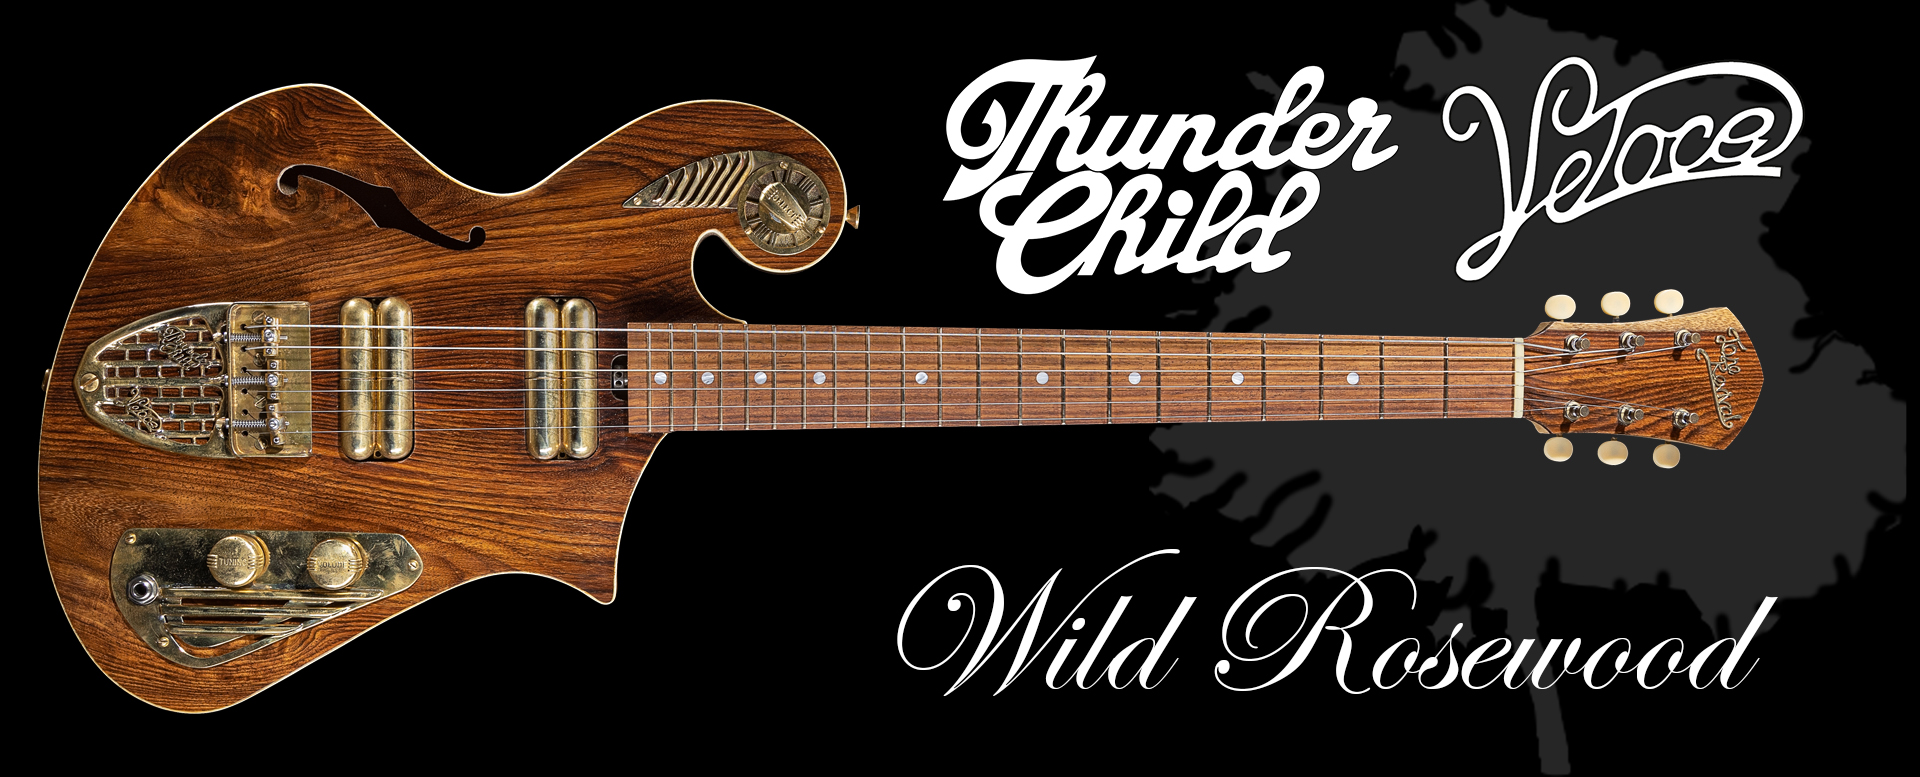 Handcrafted guitar from Wildrosewood Thunder Child